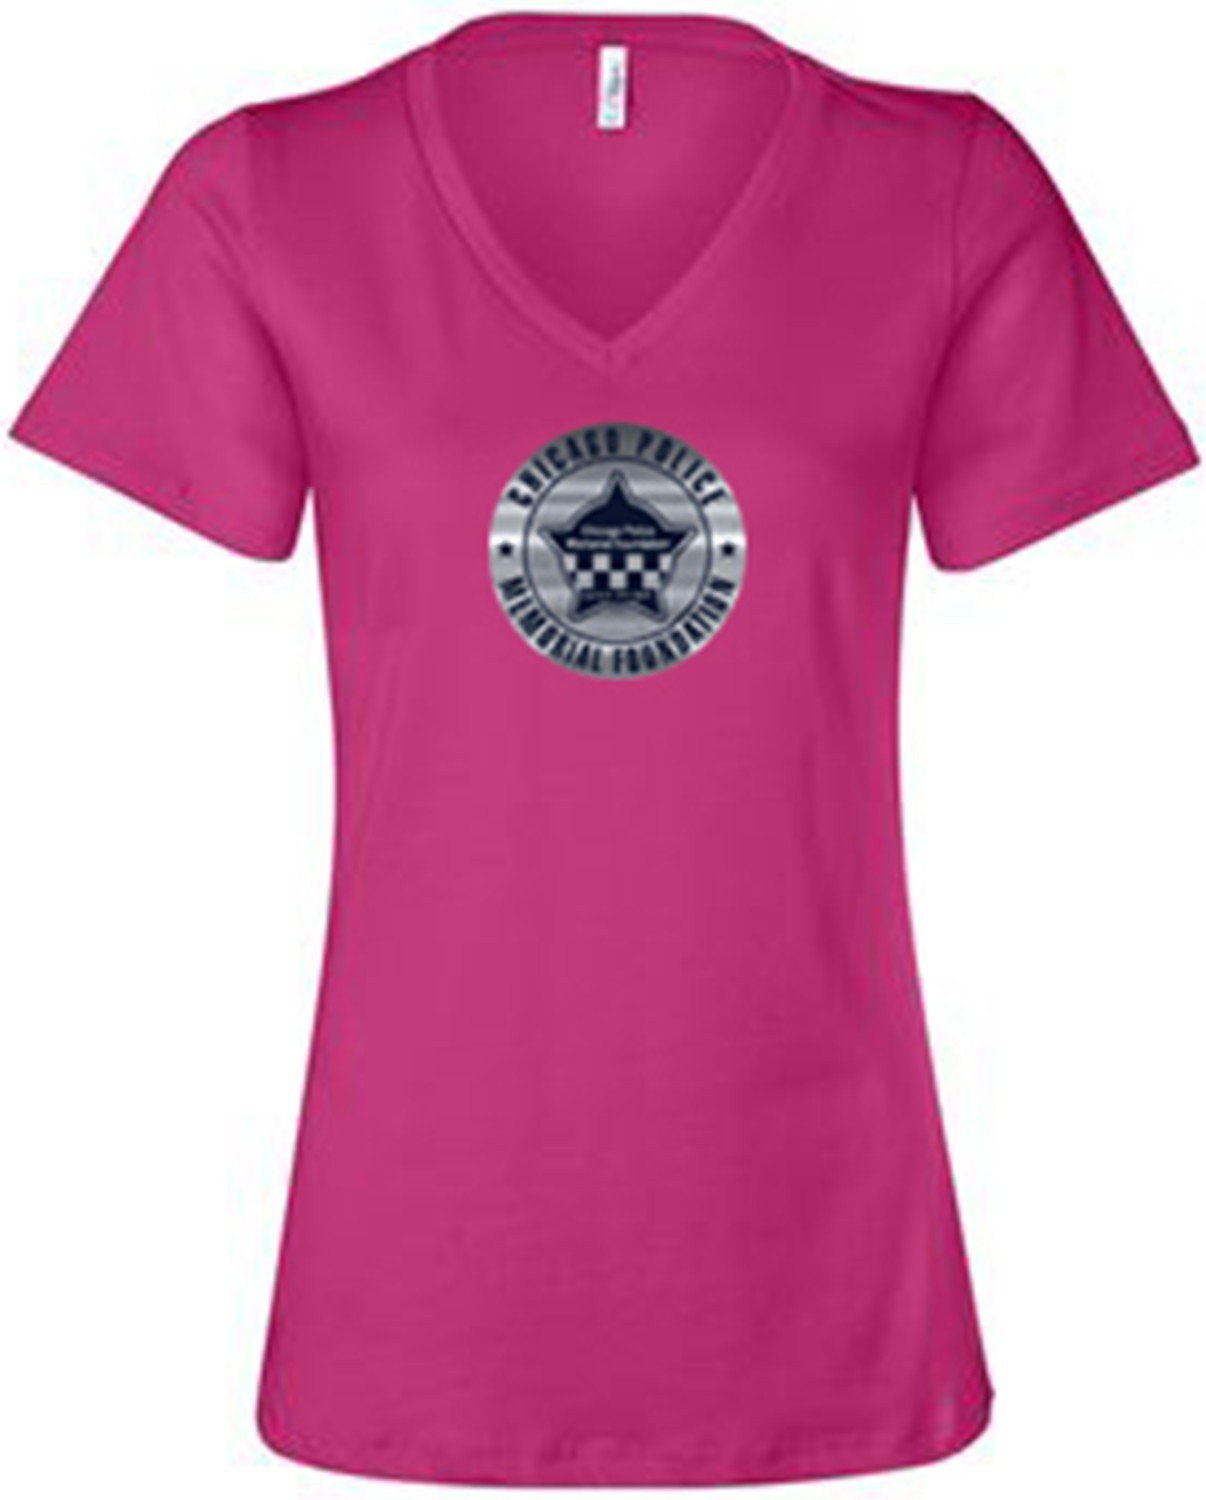 CPD Memorial Ladies Relaxed Jersey Pink V-Neck